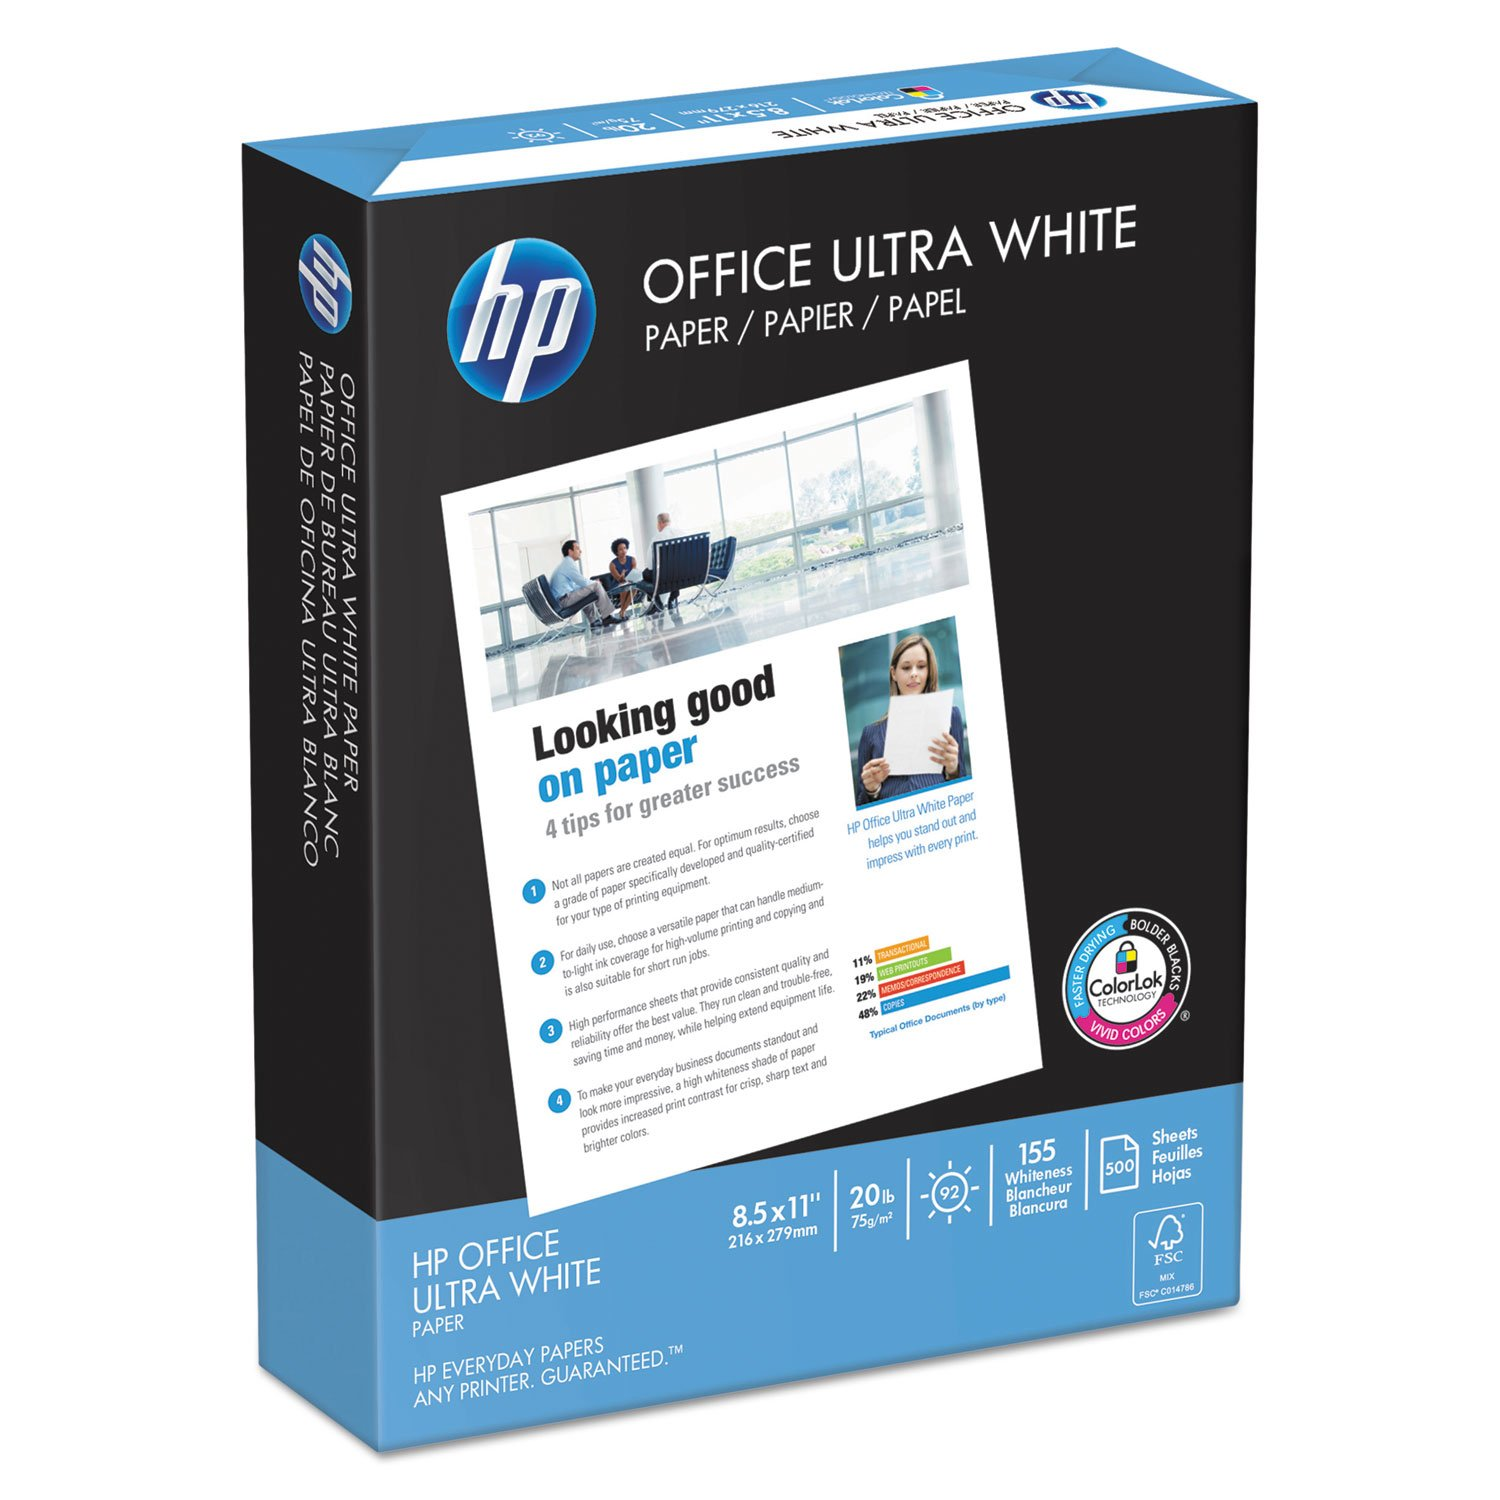 HP Printer Paper, Office20 Paper, 8.5 x 11, Letter Size, 20lb, 92 Bright, 10 Ream Case / 5,000 Sheets (112101C) Acid Free Paper by HP Paper (Image #2)